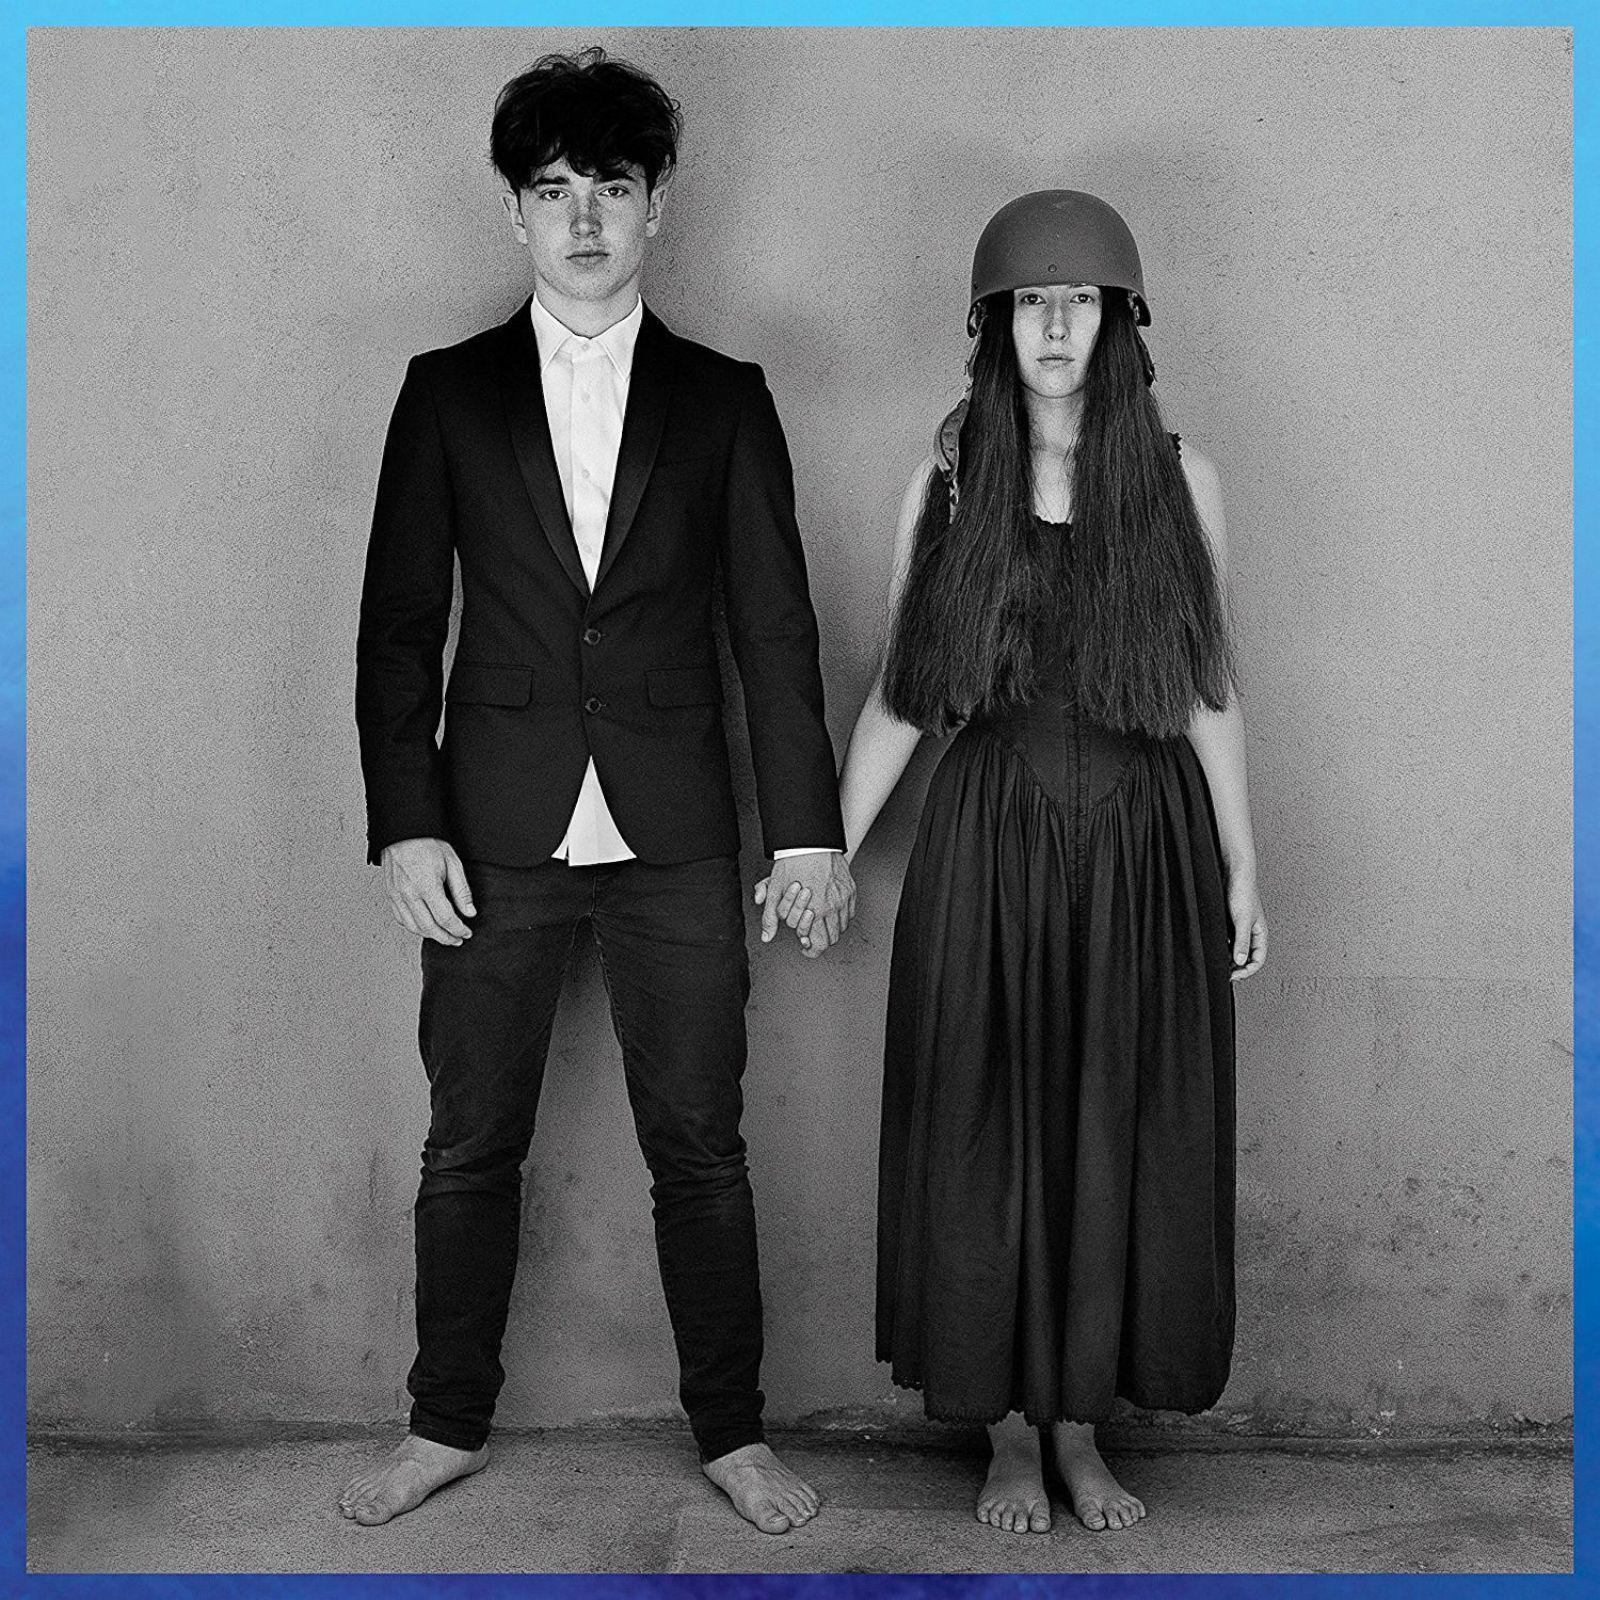 U2's 'Songs of Experience' is one of the best albums of 2017